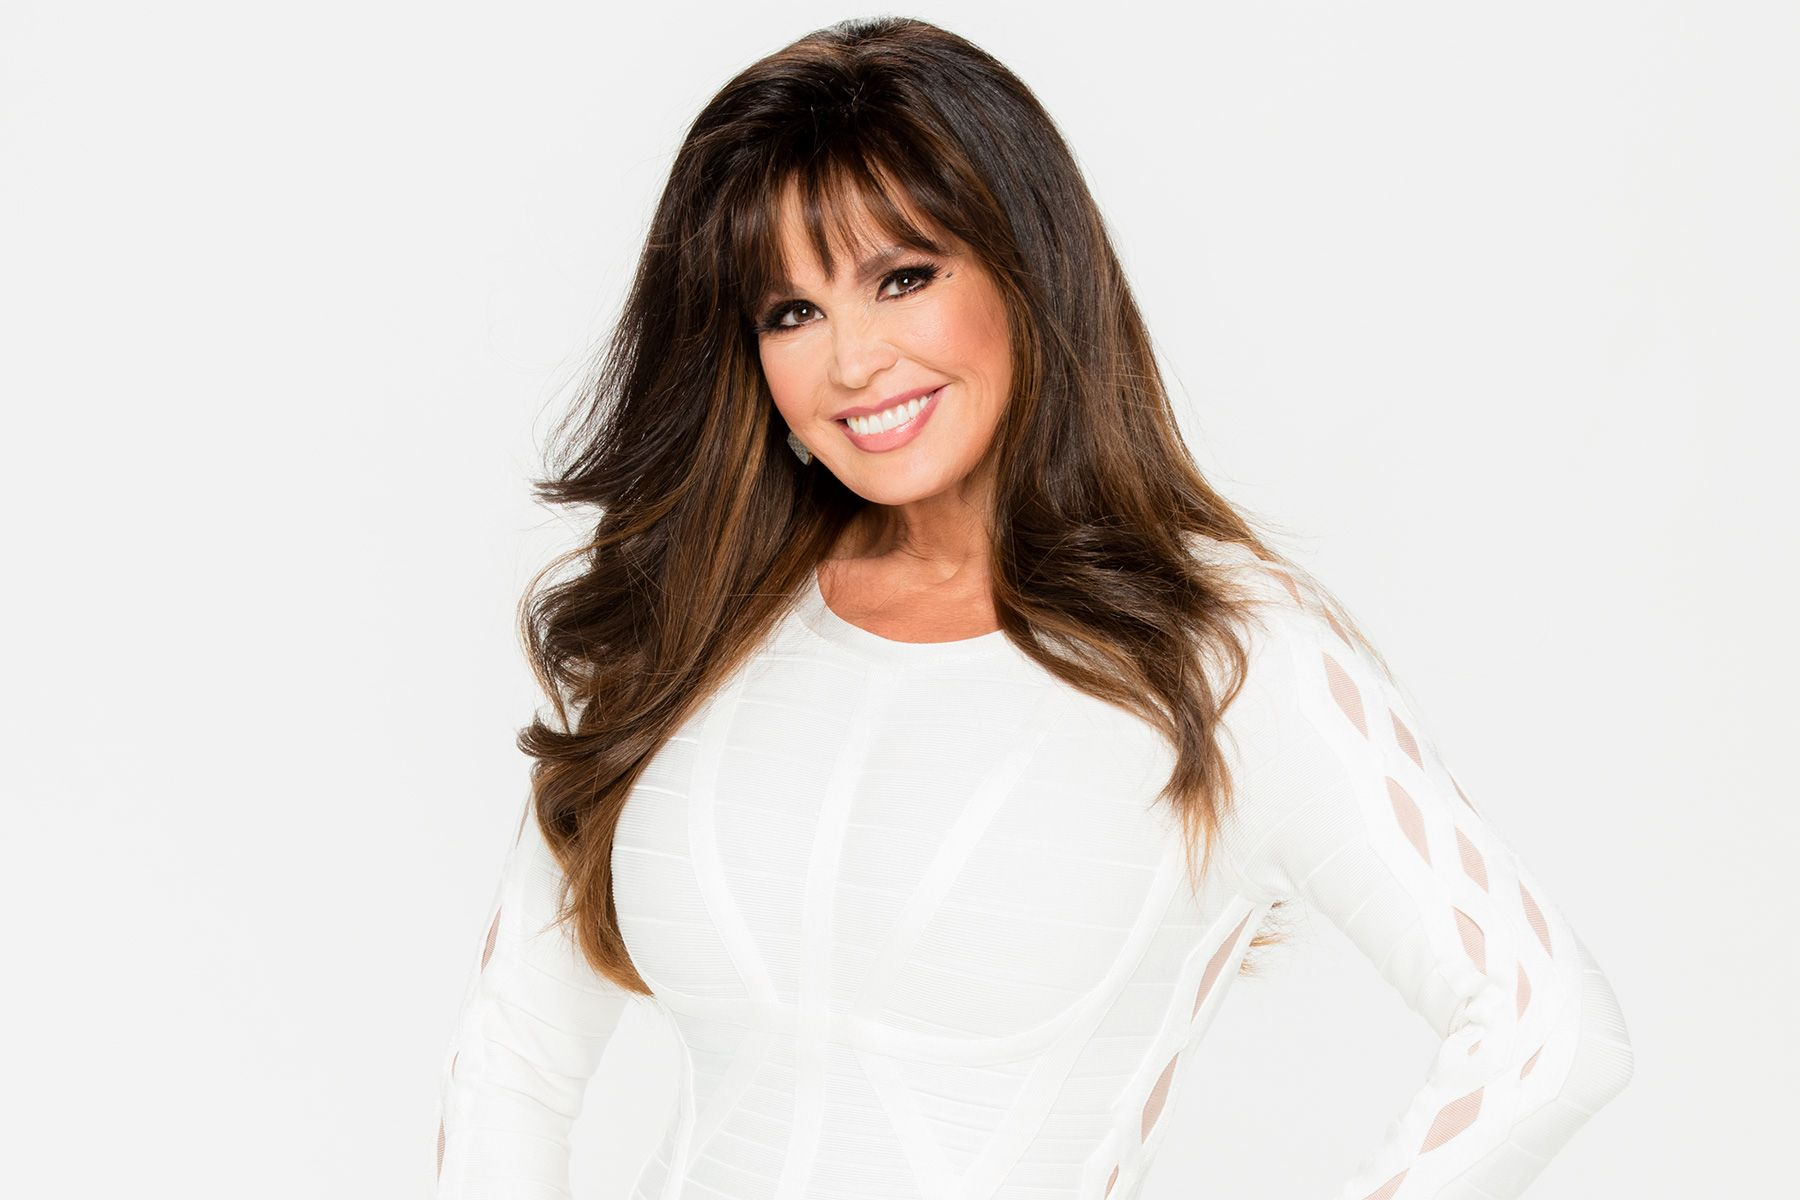 10 Questions For Marie Osmond